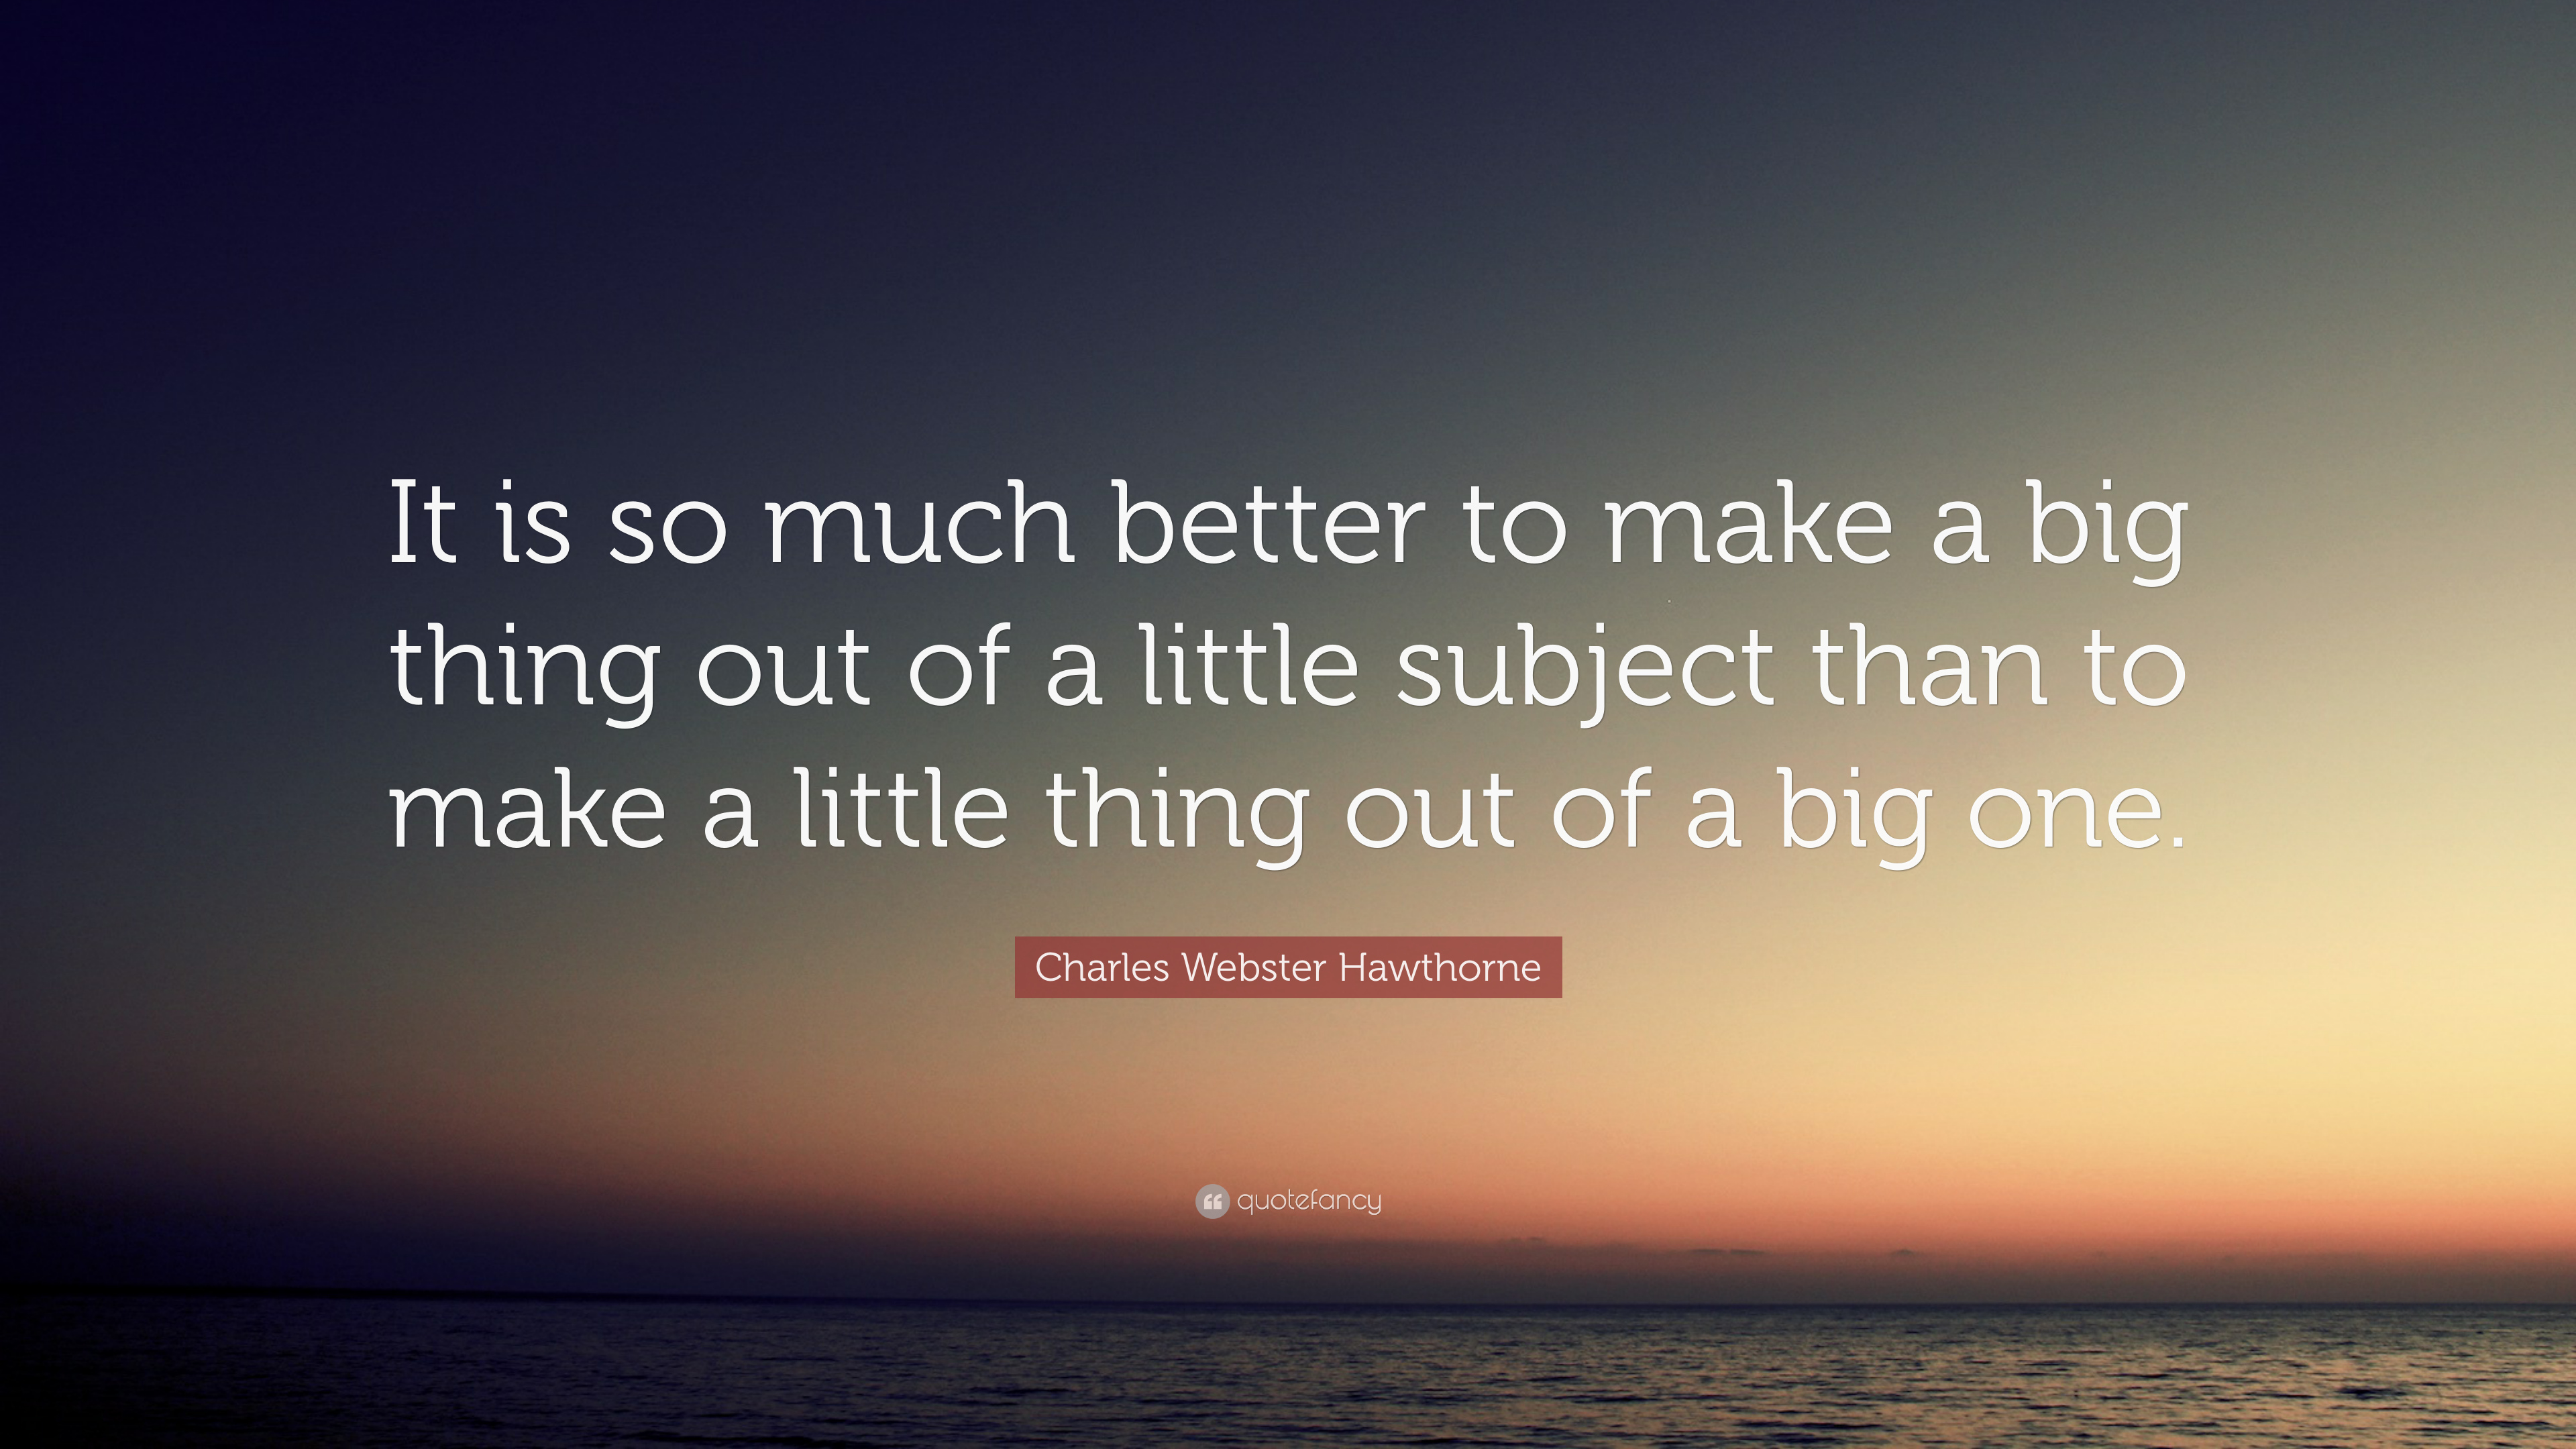 A little thing is better than big idleness: the meaning of the proverb 70